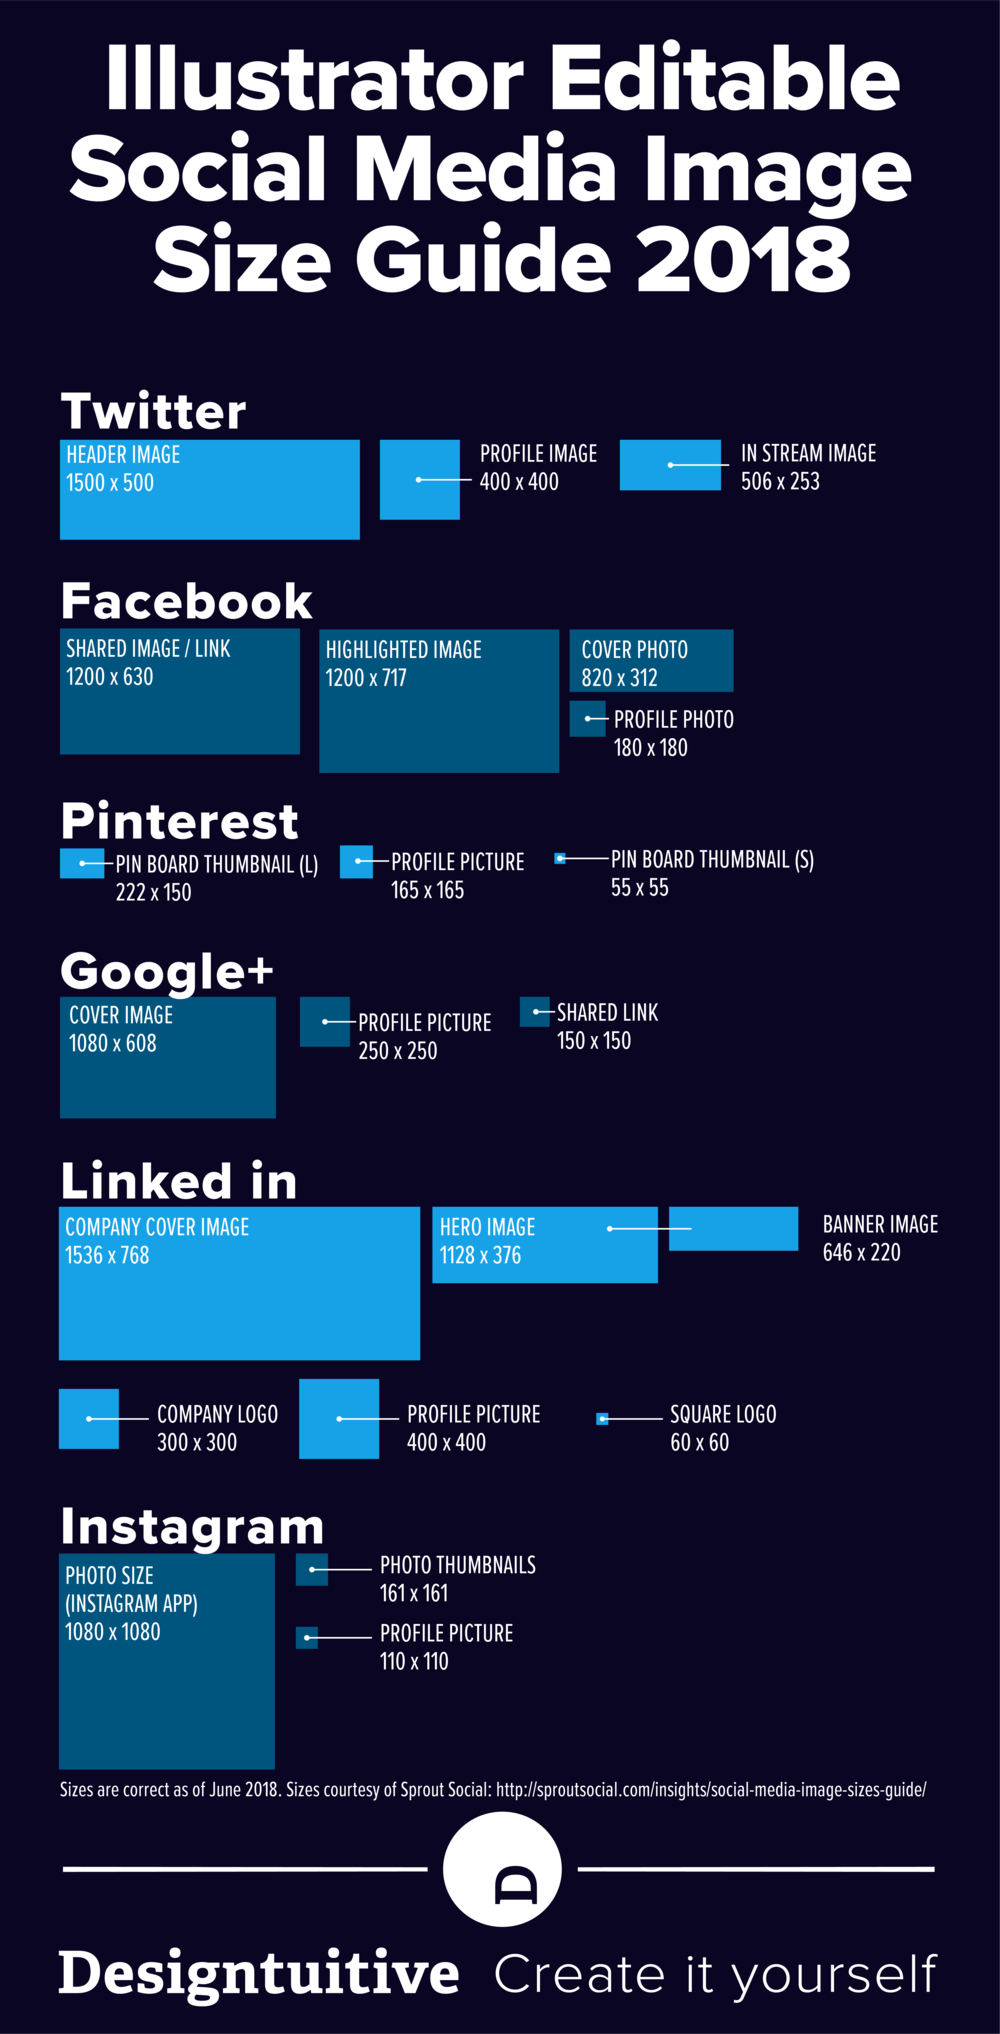 always-up-to-date-social-media-image-size-guide-2018-illustrator-editable.png